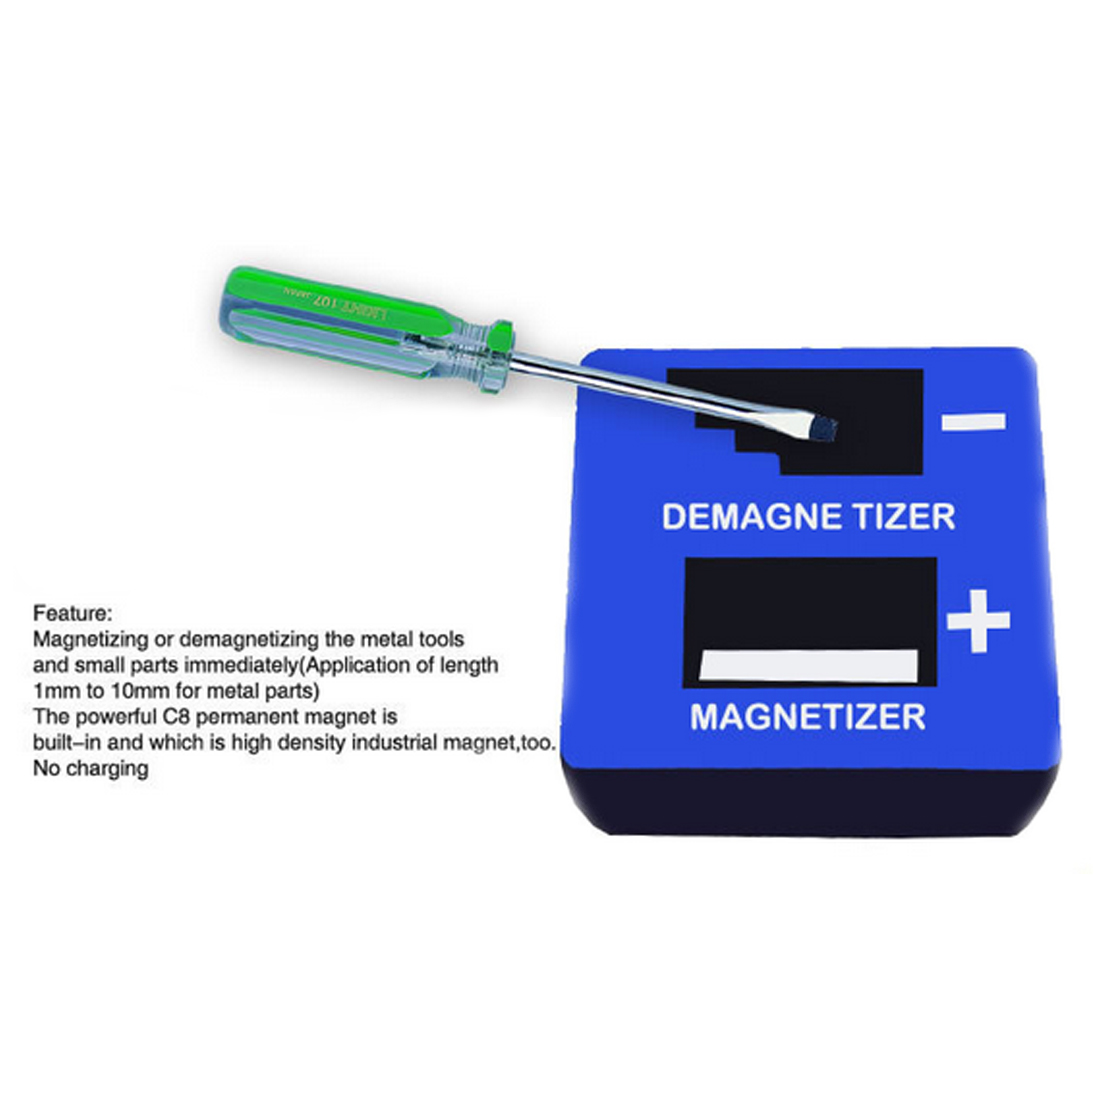 Magnetizer Demagnetizer Tool Screwdriver Magnetic Pick Up Tool Screwdriver Blue